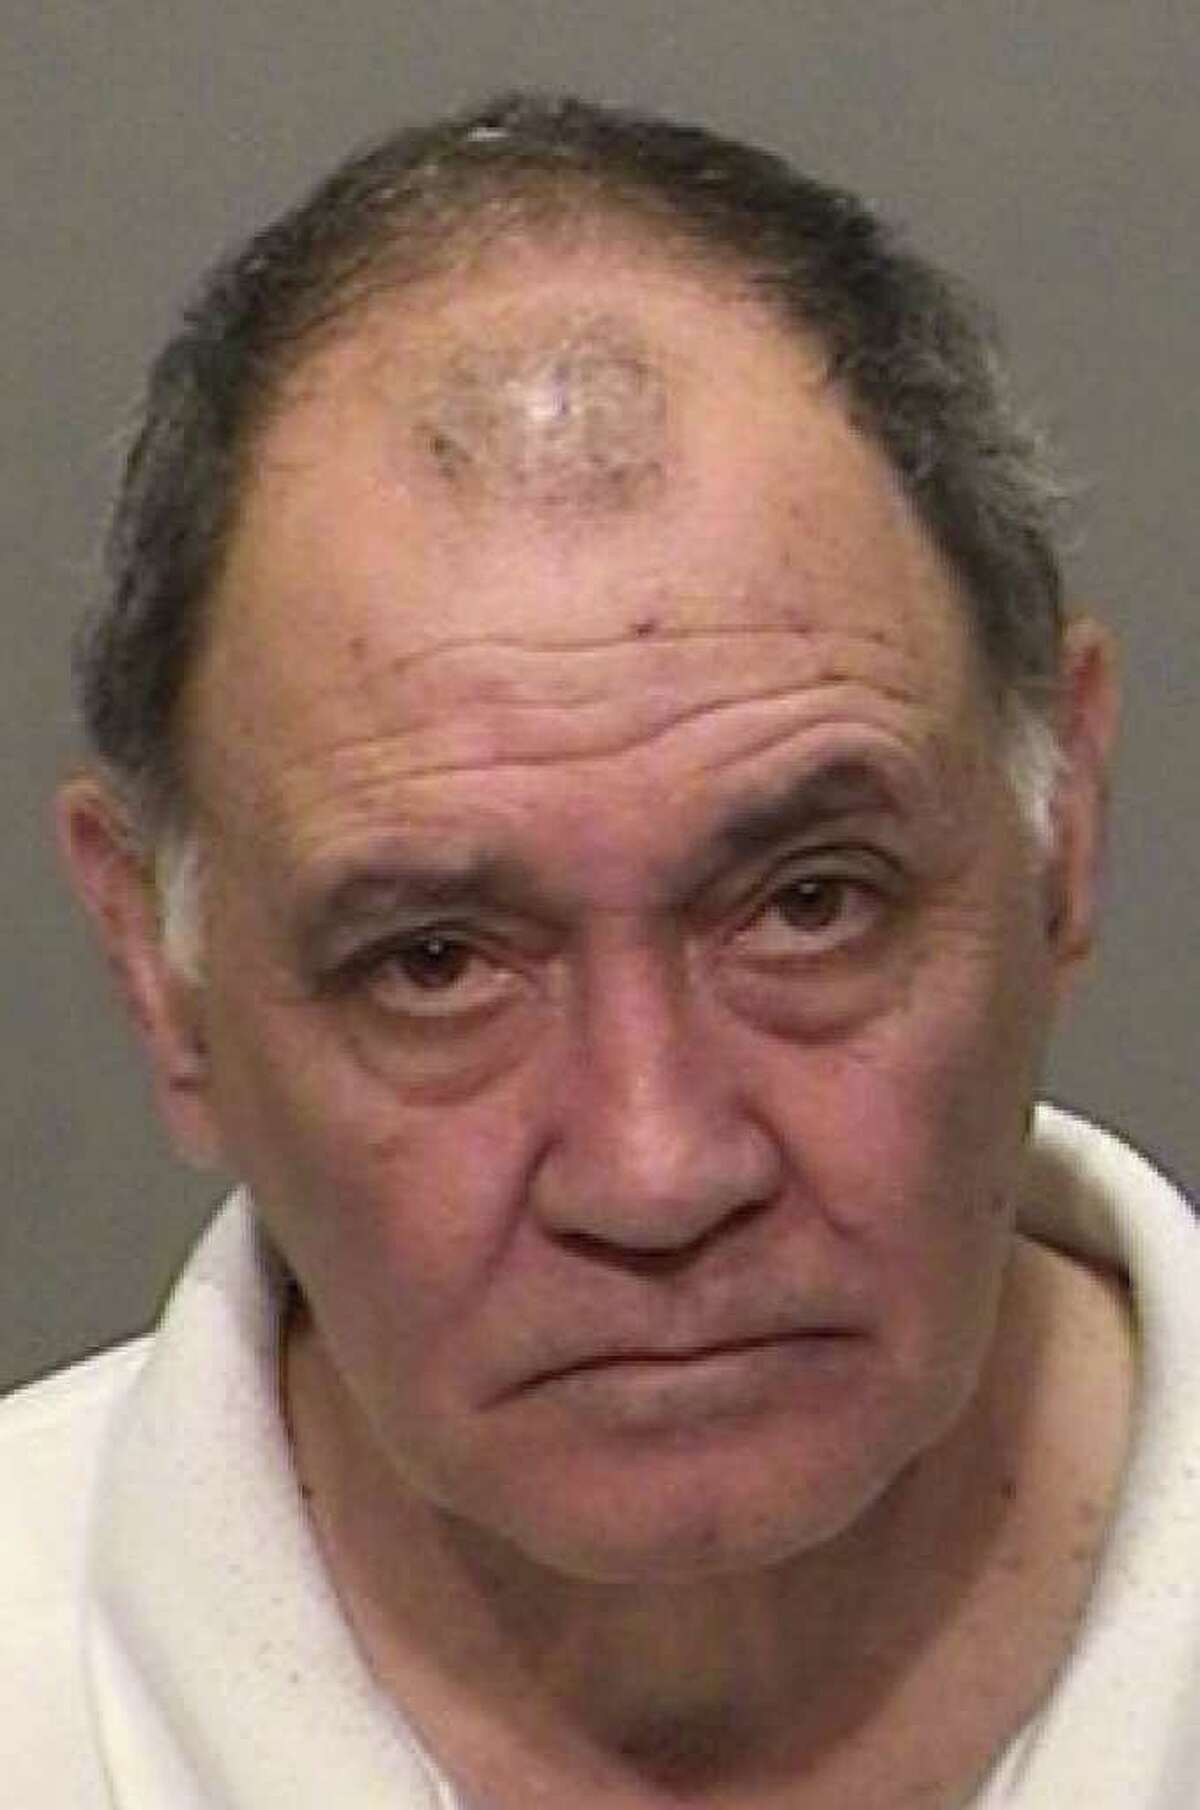 Joseph Antonelli, 64, of Stamford, faces three counts of disorderly conduct for allegedly making threats against President Barack Obama, who recently stopped in Stamford and Greenwich. Photo provided by Greenwich police.